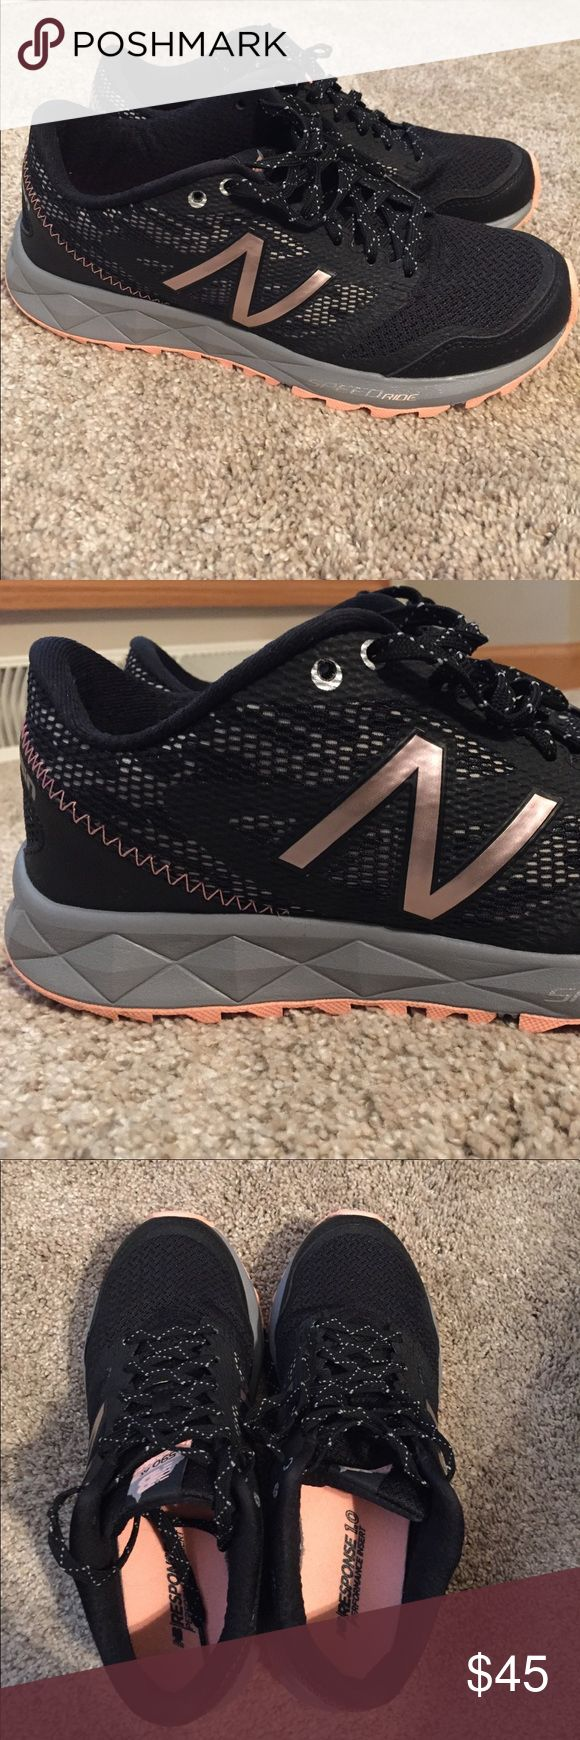 """New Balance all terrain running shoes Black running shoes with gray. Pale coral soles. """"N"""" on the sides is rose gold. Super cute, comfortable and in perfect condition - worn twice! Size 7. New Balance Shoes Athletic Shoes"""